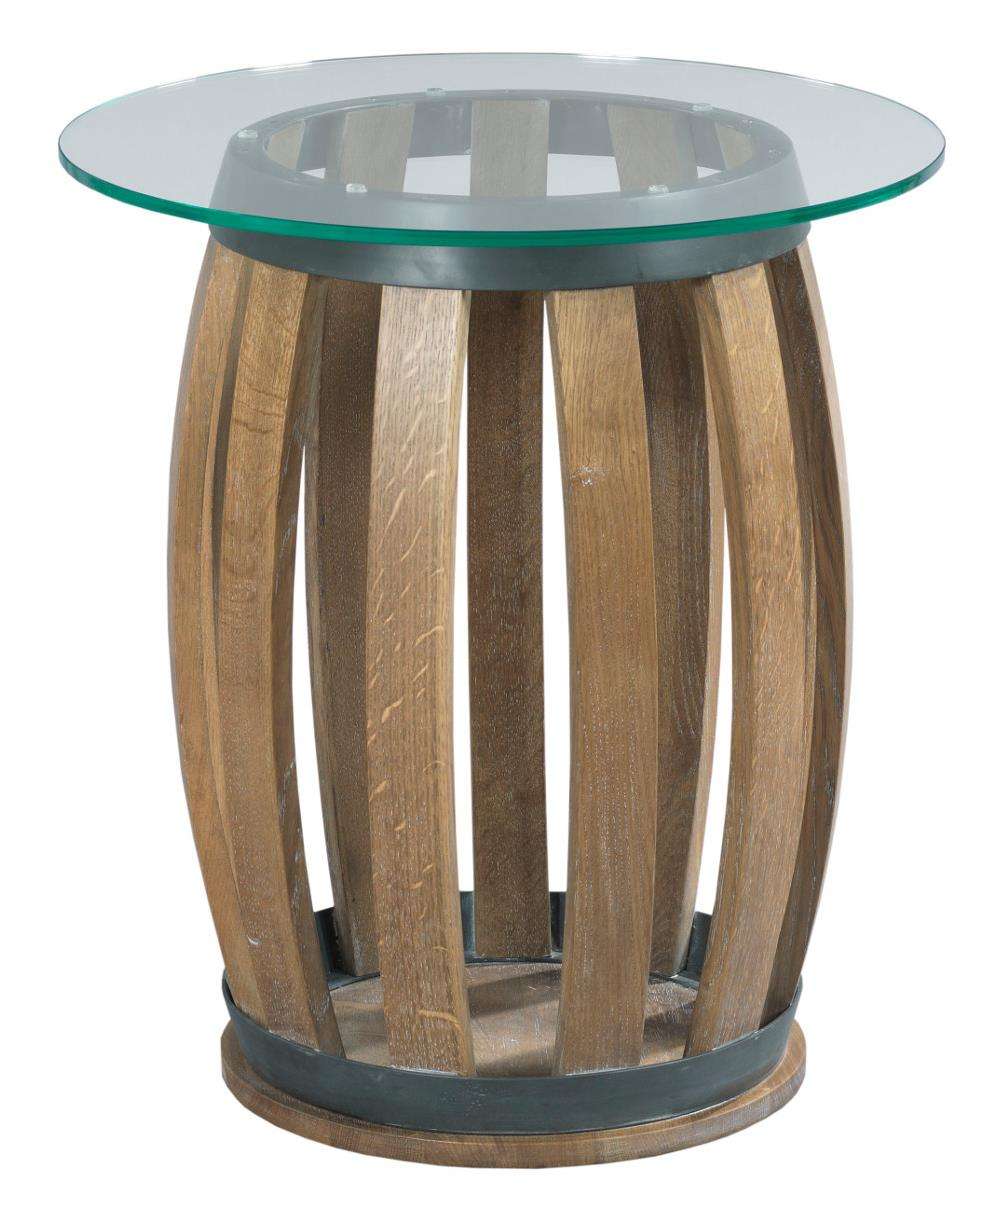 rustic wine barrel accent table with tempered glass top kincaid products furniture color stone ridge round wolf and gardiner retro kitchen chairs ceramic outdoor side patio small